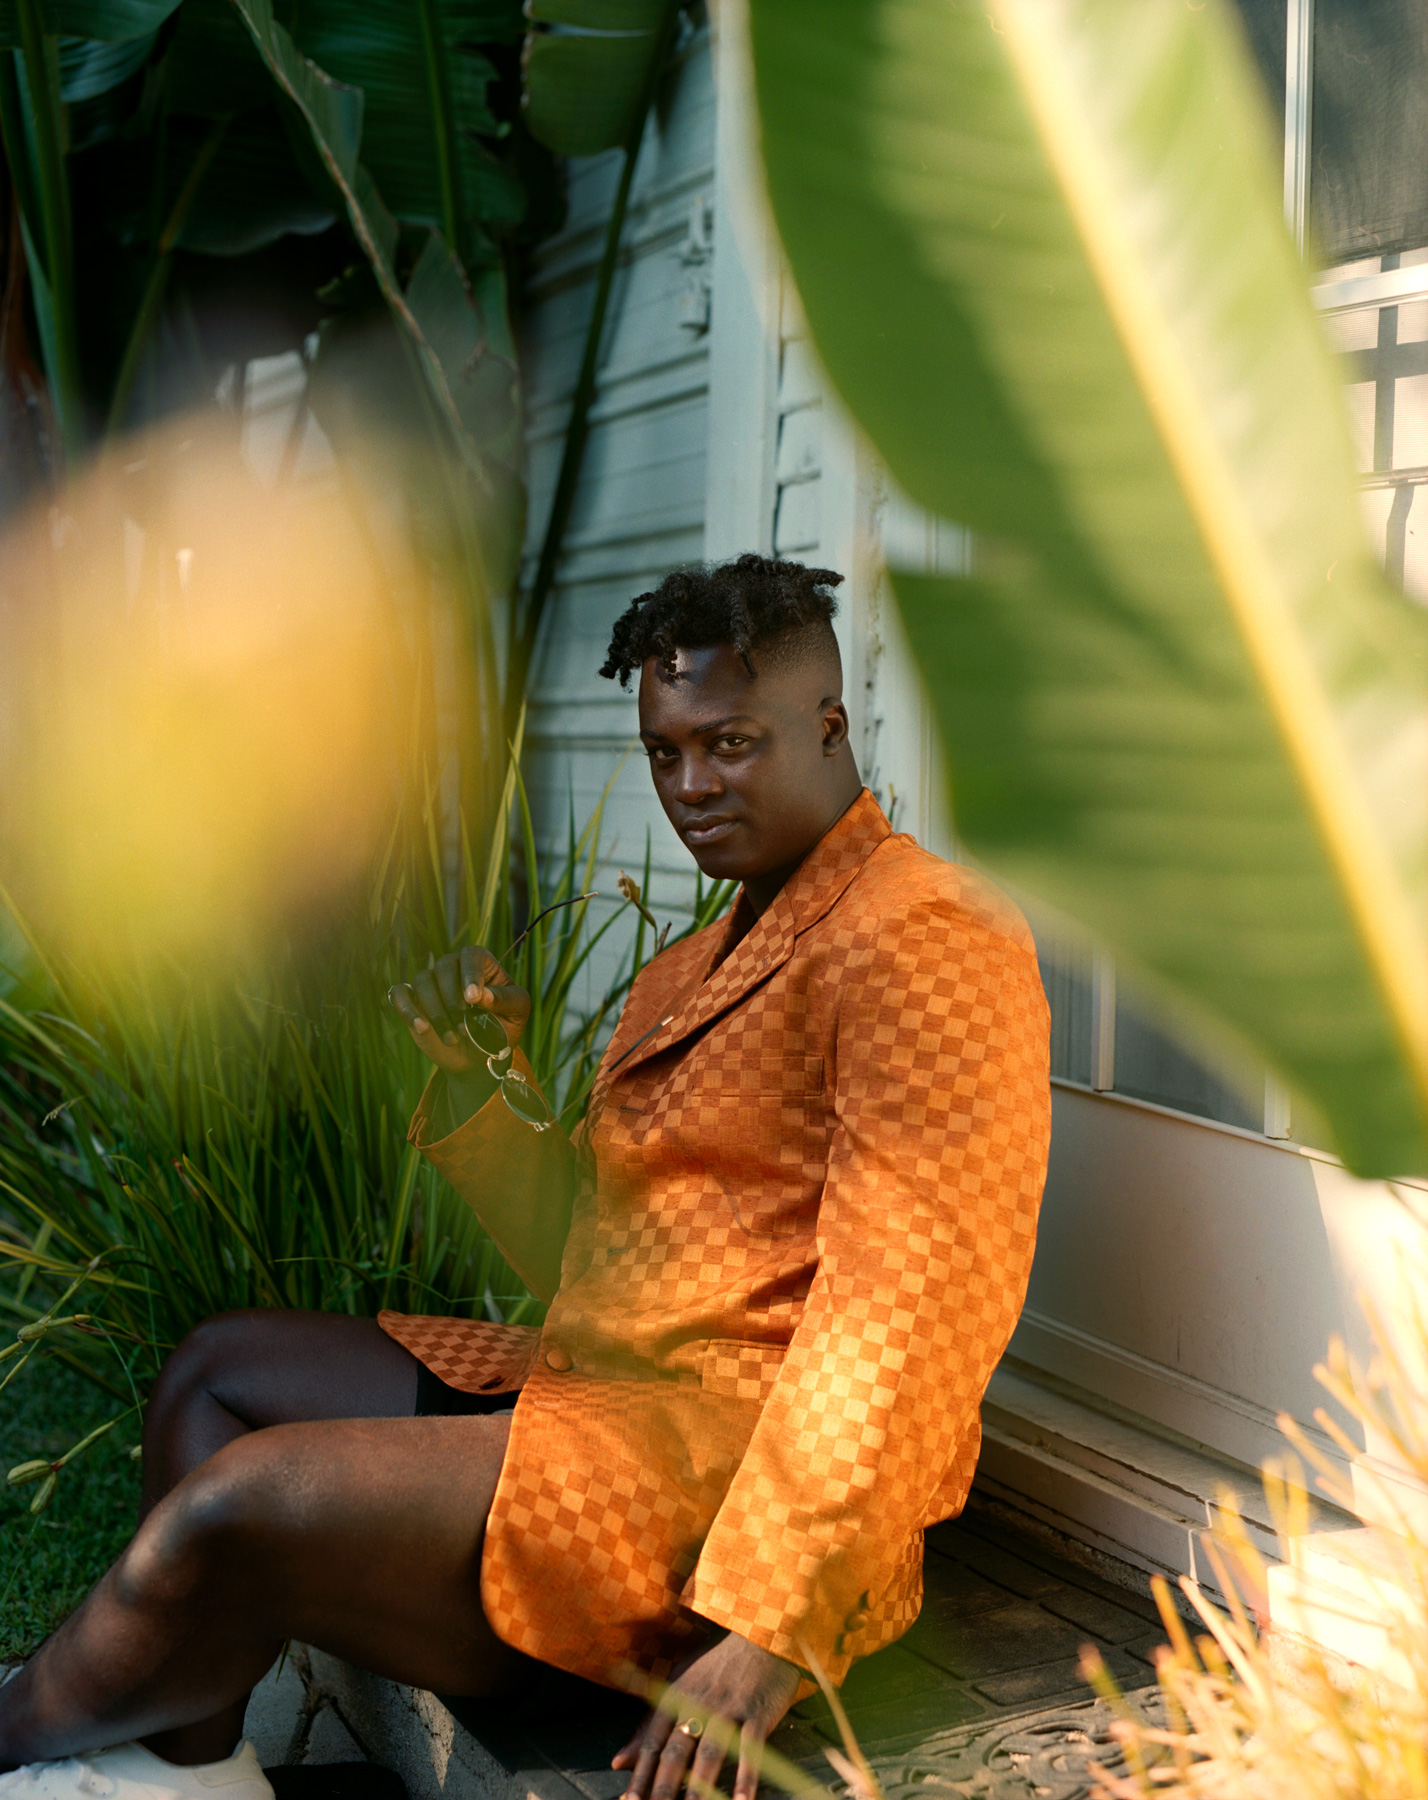 Bipolar Sunshine, singer at home in his garden in  Los Angeles 2017. Photography By Ioannis Koussertari